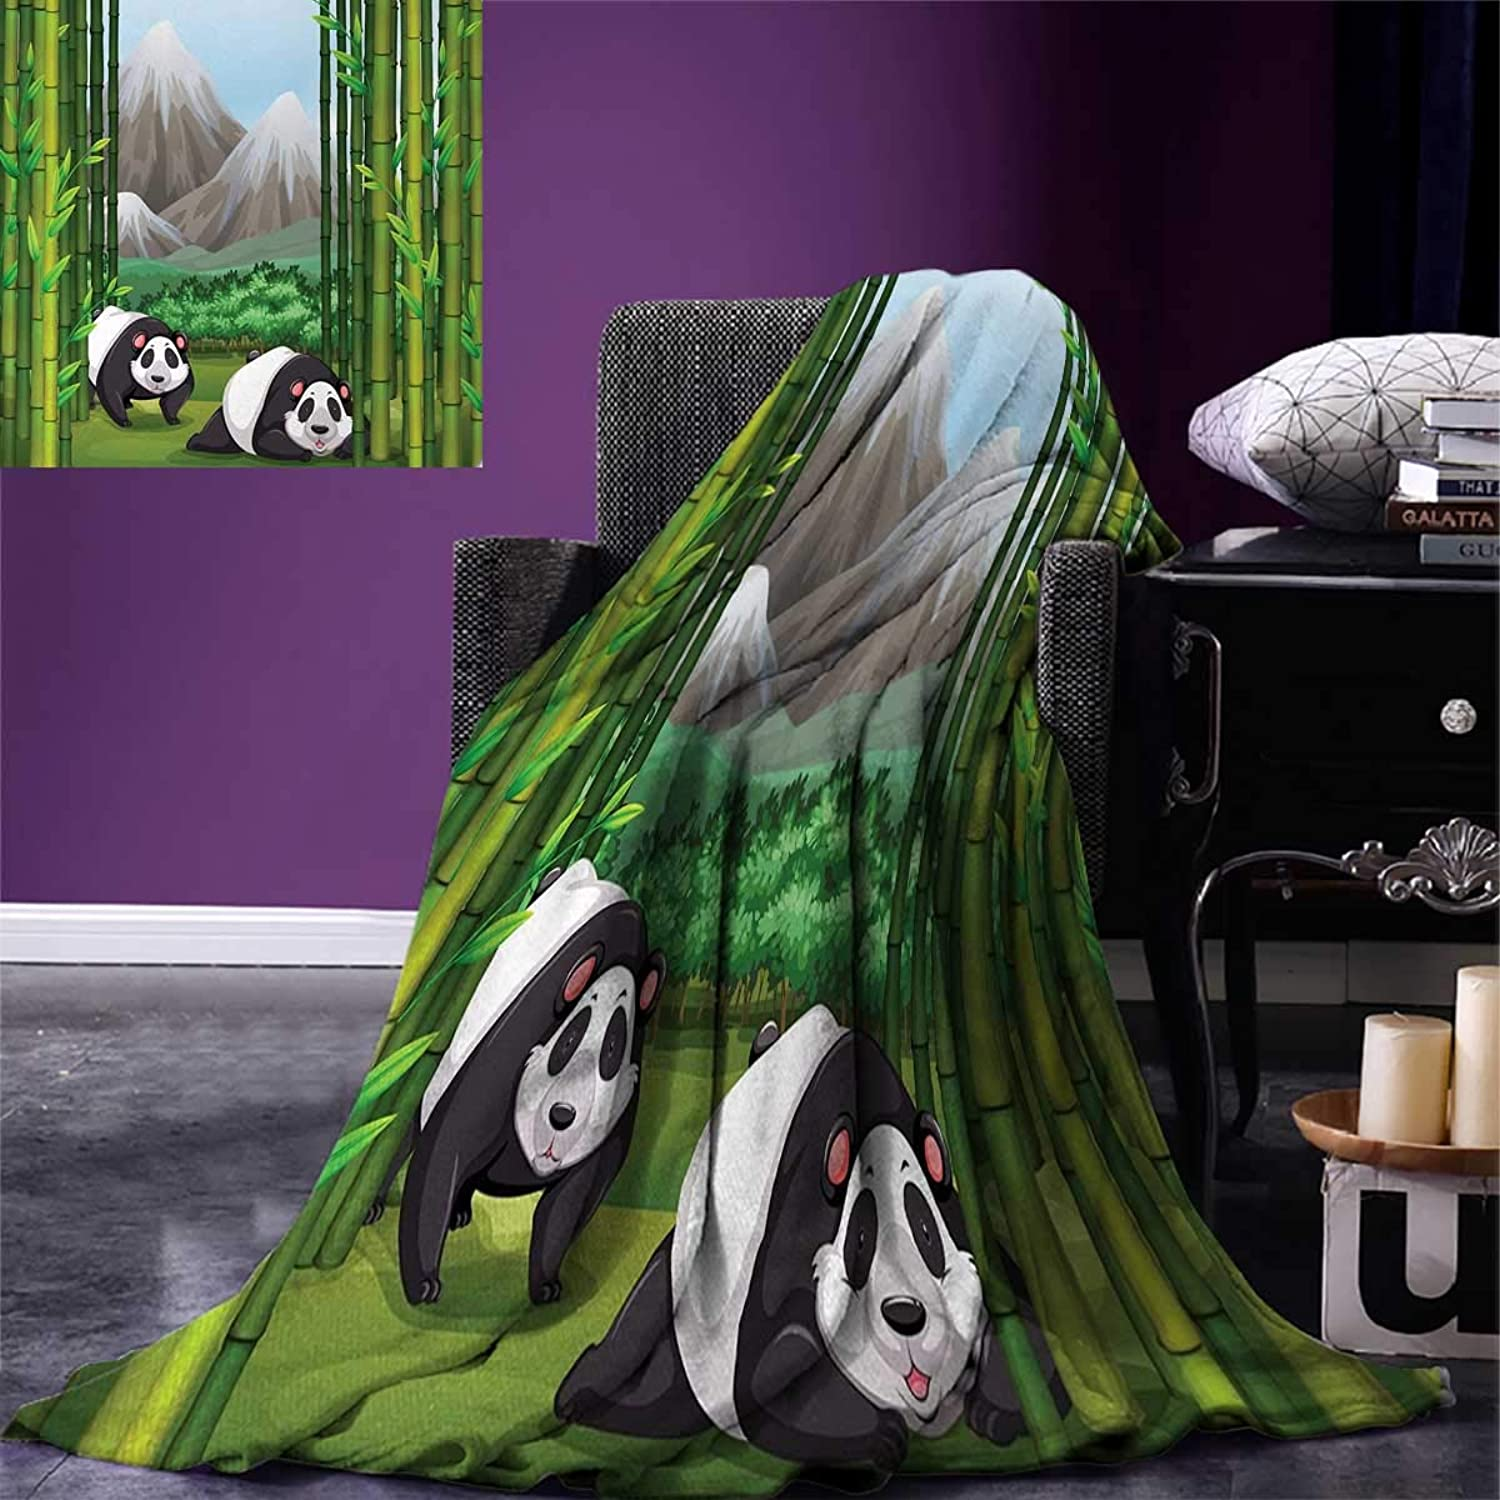 Anniutwo Tropical Travel Throw Blanket Panda Bears Walking Among Bamboo Majestic Mountain Jungle Cartoon Illustration Velvet Plush Throw Blanket 60 x50  Multicolor